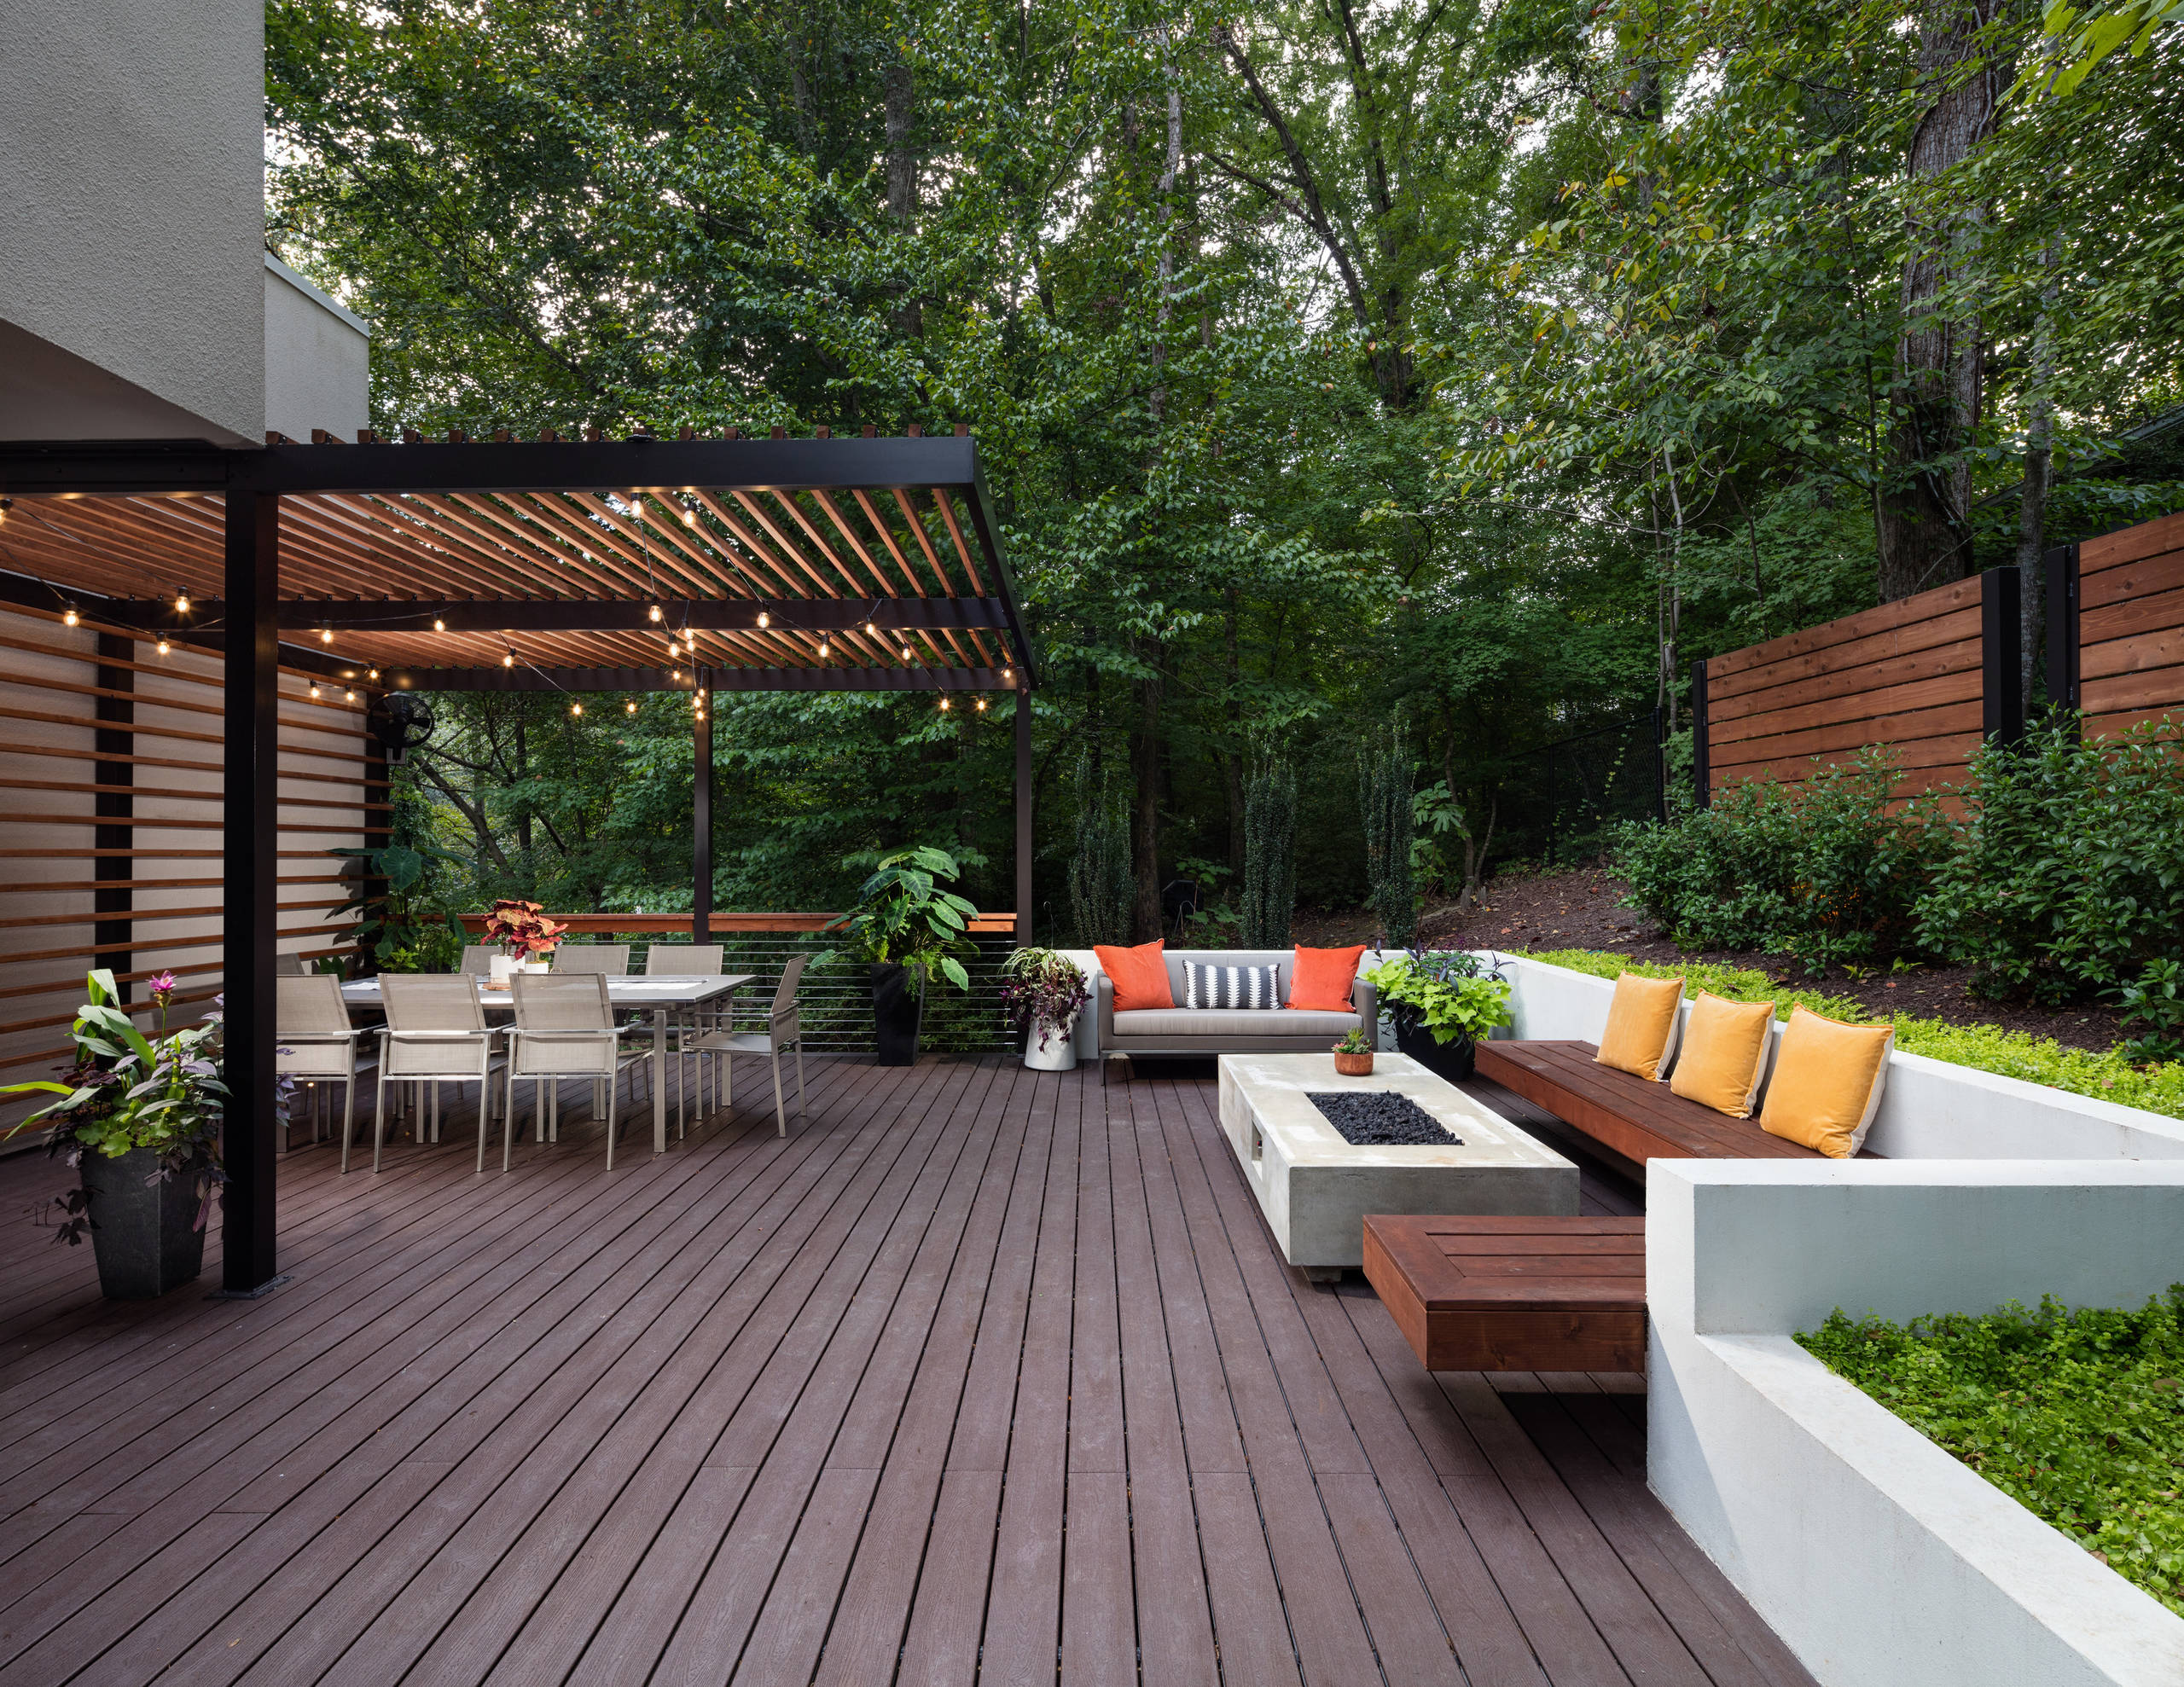 75 Beautiful Large Deck Pictures Ideas March 2021 Houzz